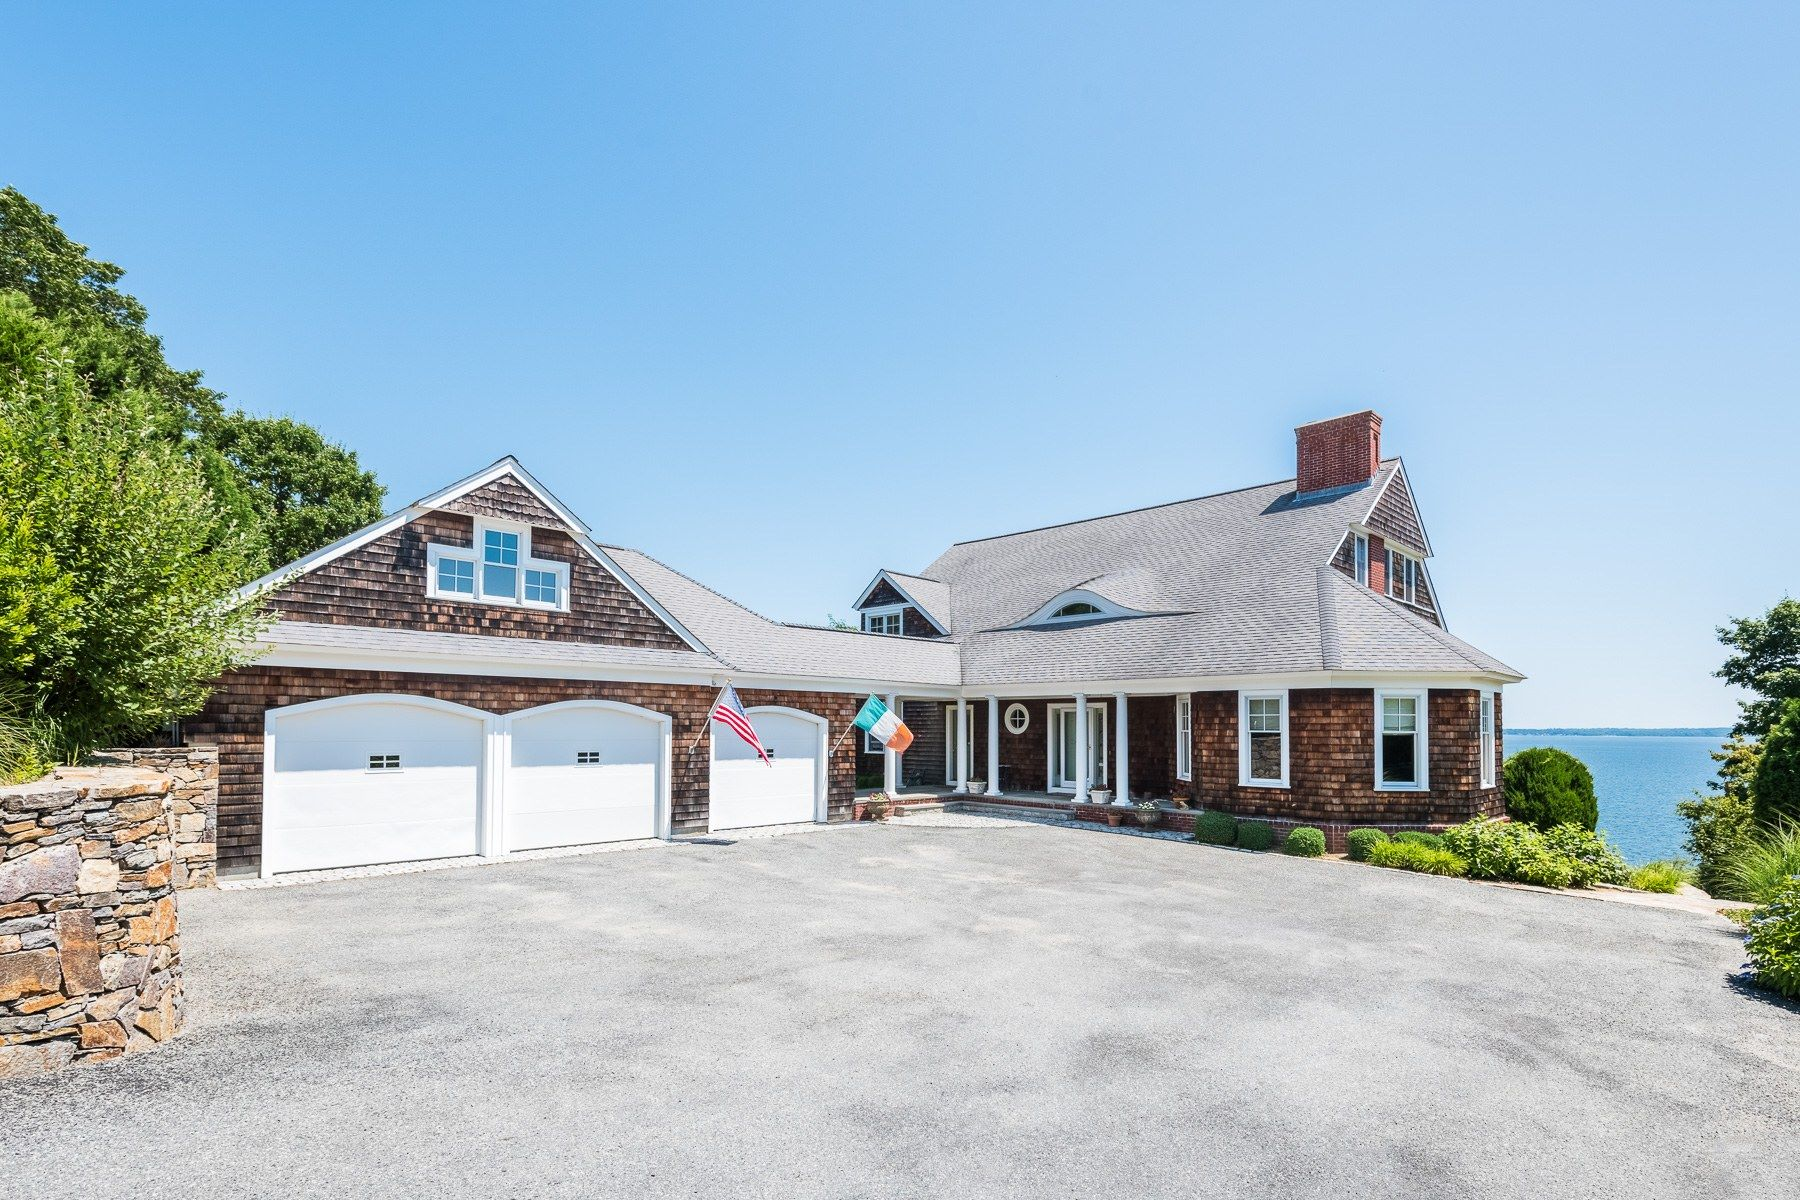 Single Family Homes for Sale at 117 Tea House Ln., Warwick, RI 117 Tea House Ln. Warwick, Rhode Island 02889 United States